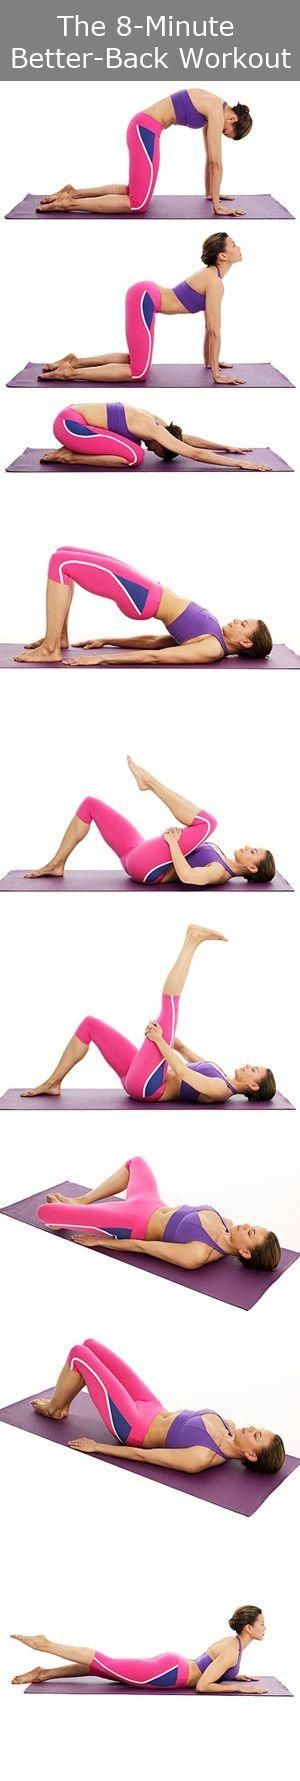 8 minute Better Back Workout #fitness #workout